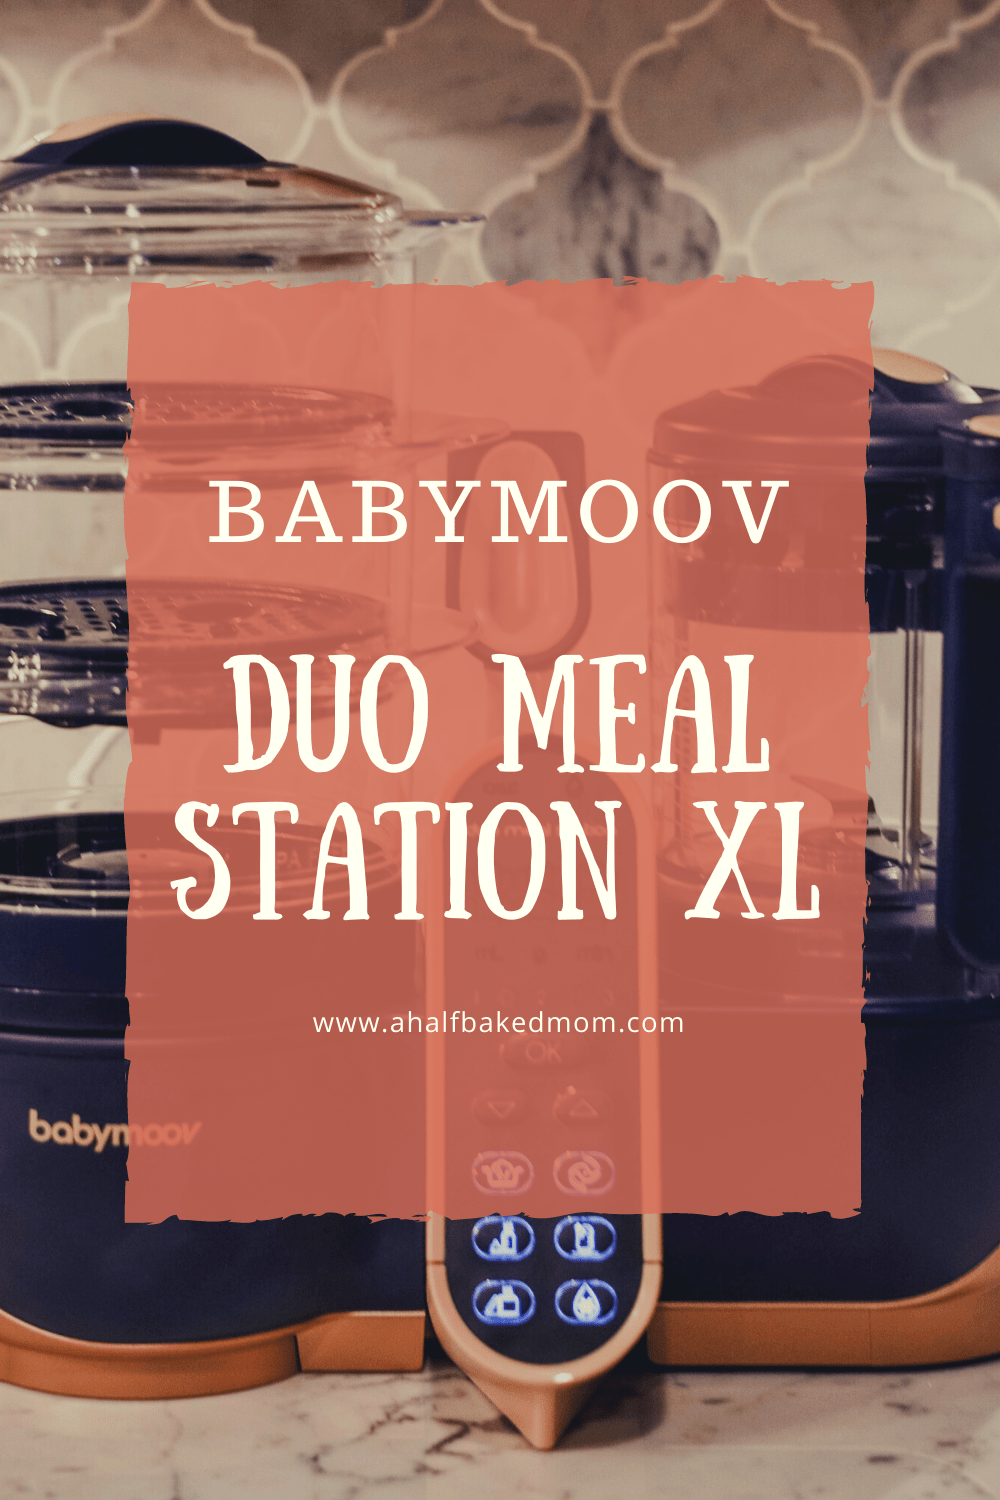 Babymoov Duo Meal Station XL Review